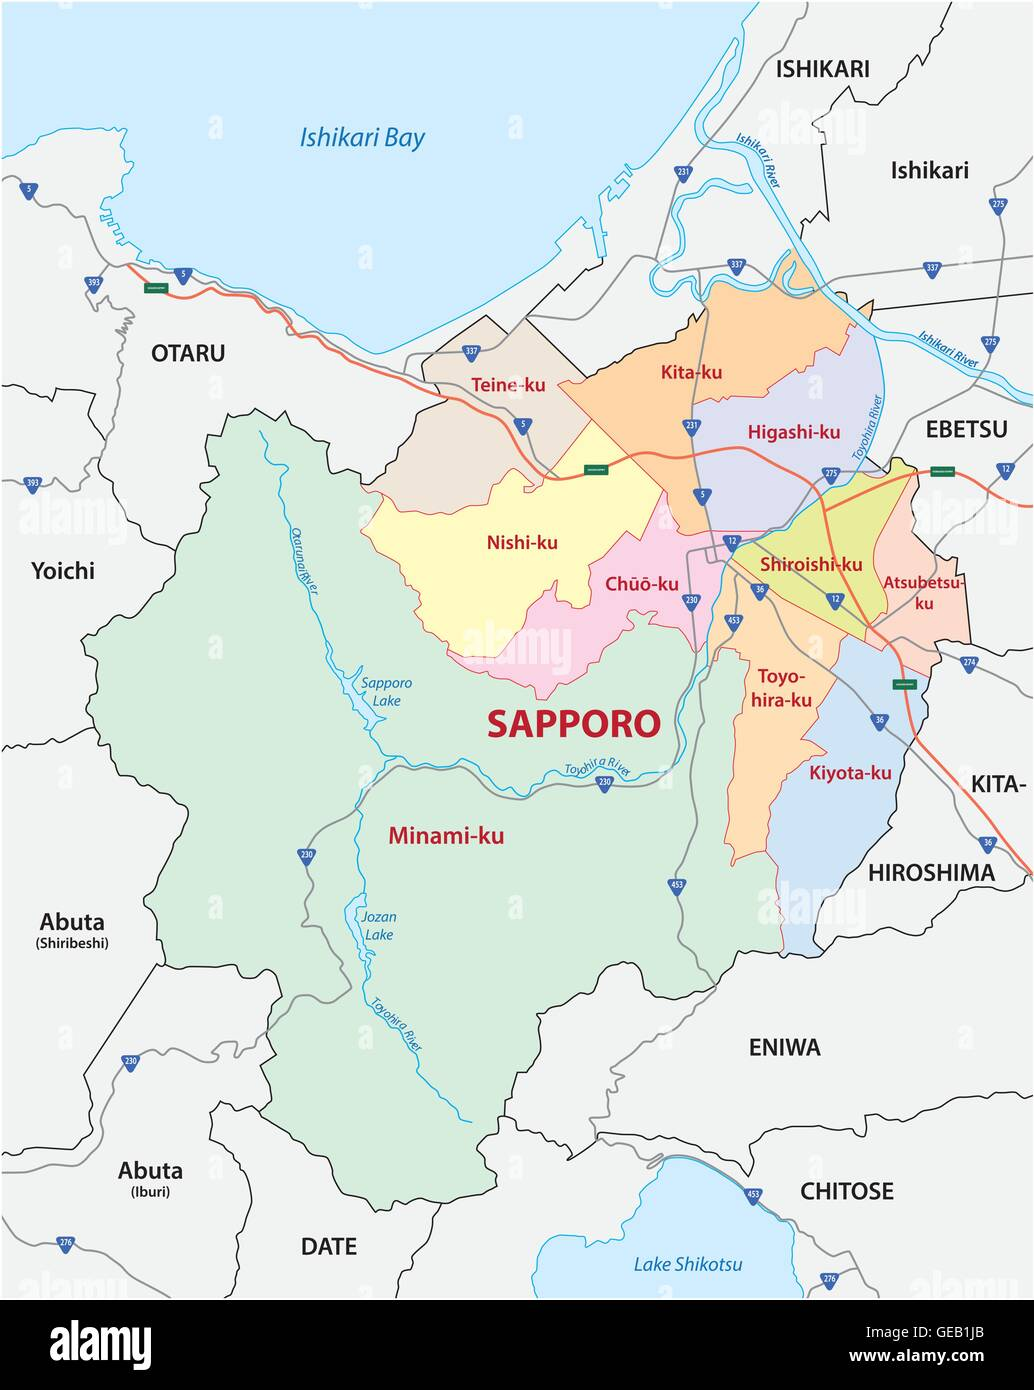 Road Administrative And Political Map Of The Japanese City Sapporo